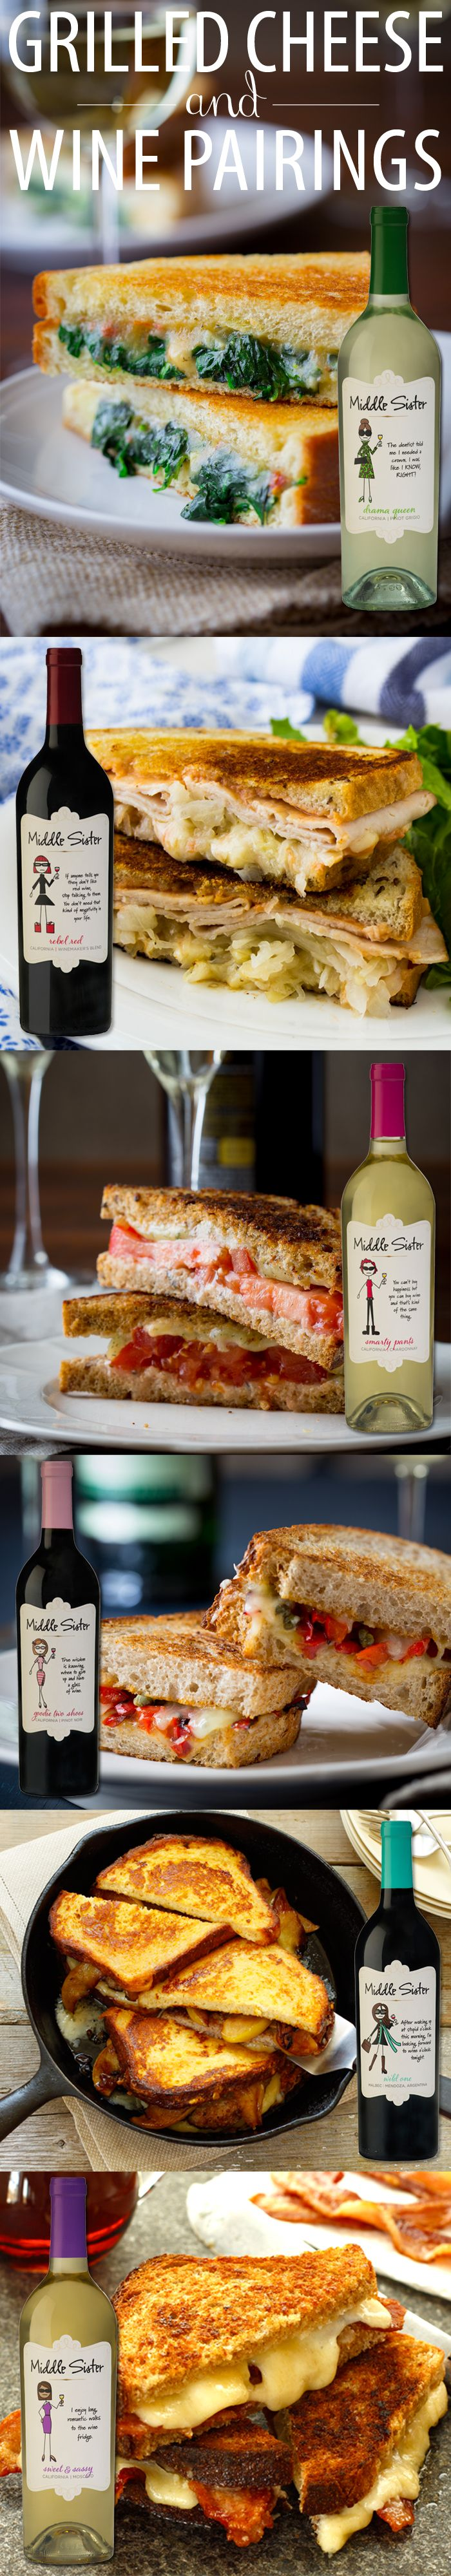 Grilled Cheese and Wine Pairings